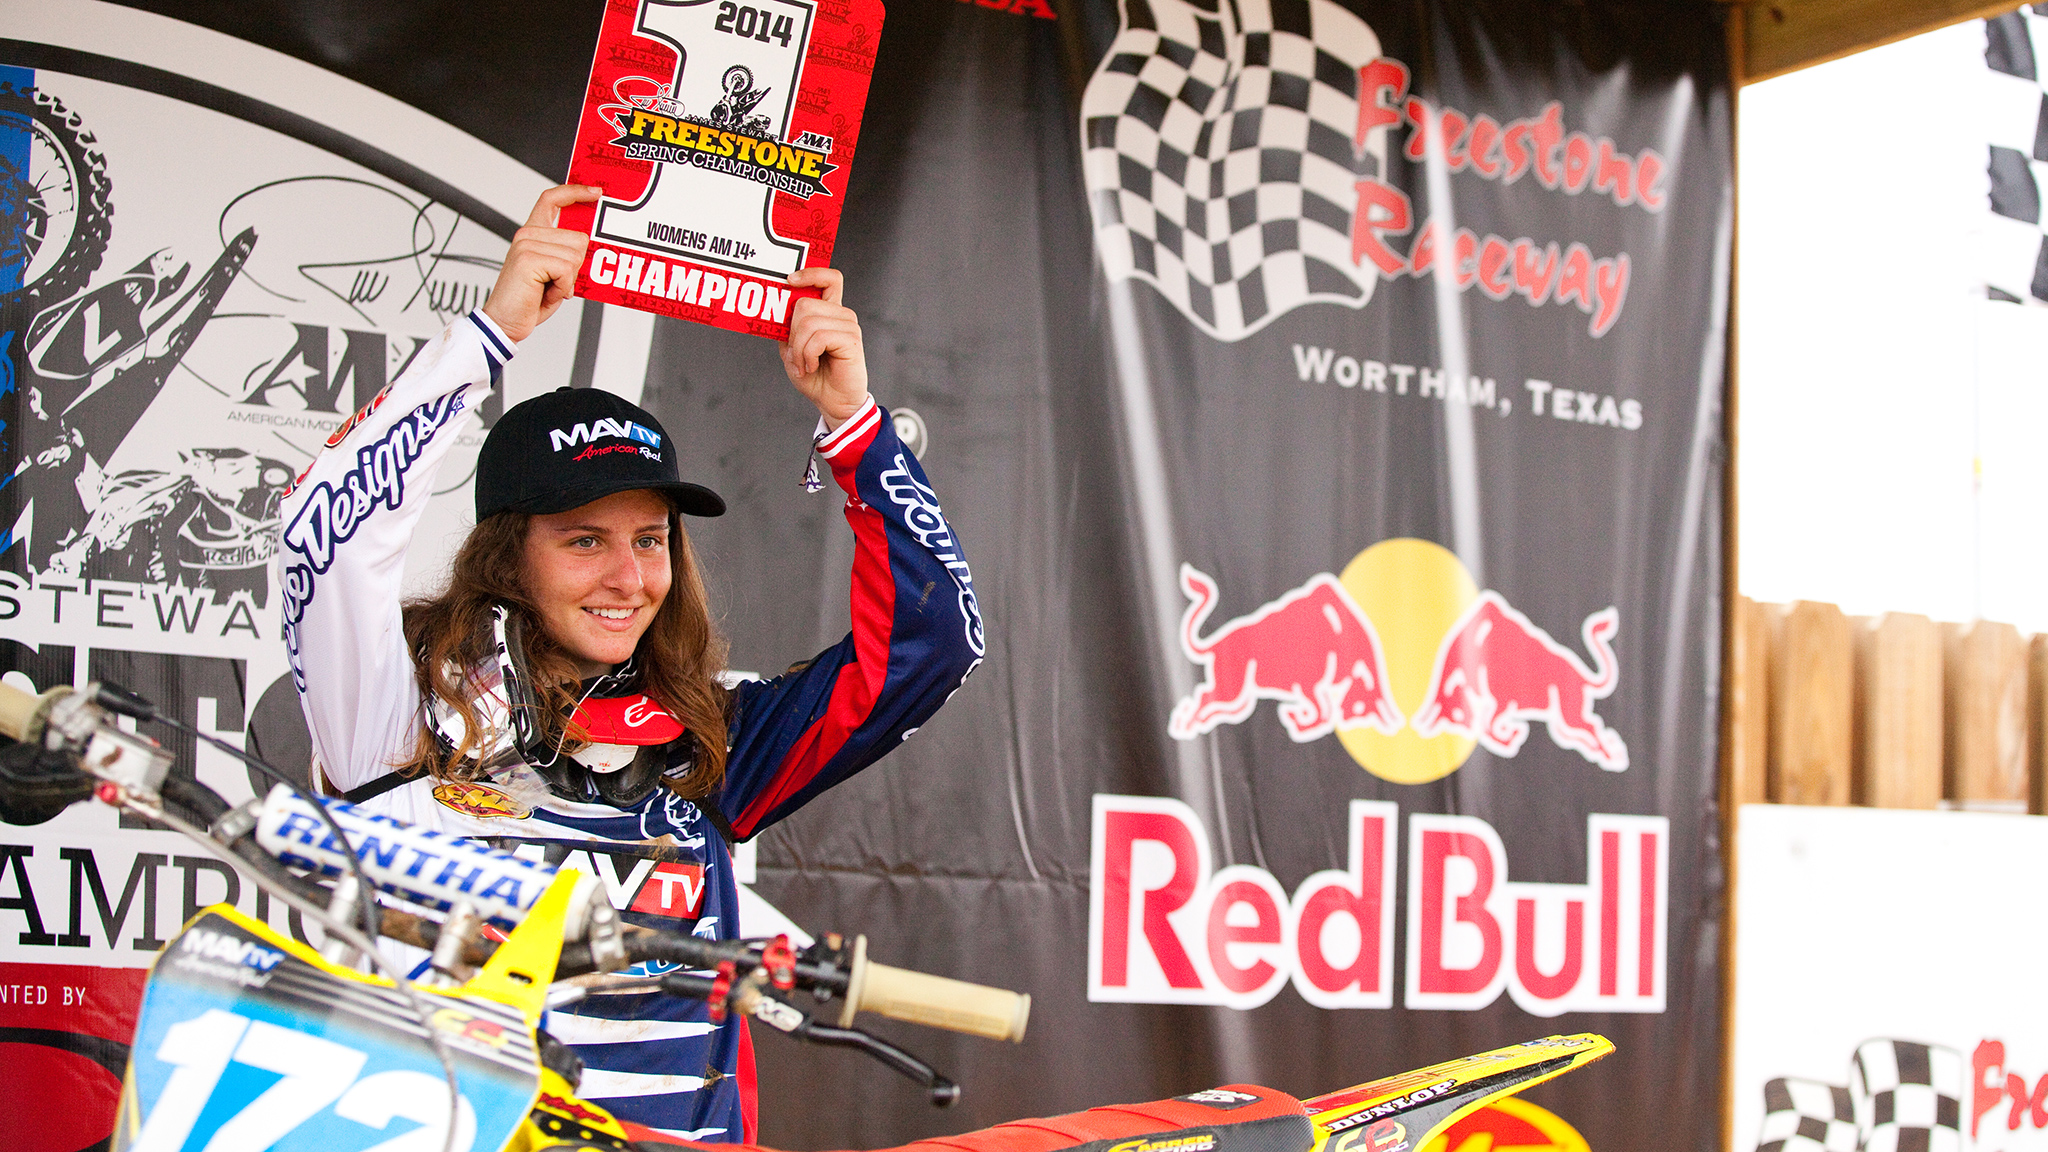 At the 2014 James Stewart Freestone Spring Championship held on March 18-22 at Freestone in Wortham, Texas, Hannah Hodges took home three titles: Girls senior (12-16), schoolgirl (12-16), and womens amateur 14-plus.brbrMany think Hodges can become the best female rider in the U.S., but without a professional female motocross circuit, Hodges' future earnings potential on dirtbikes is limited.BRBRHere's a look at some WMX stars who have been impacted by the recent changes to the former pro circuit.